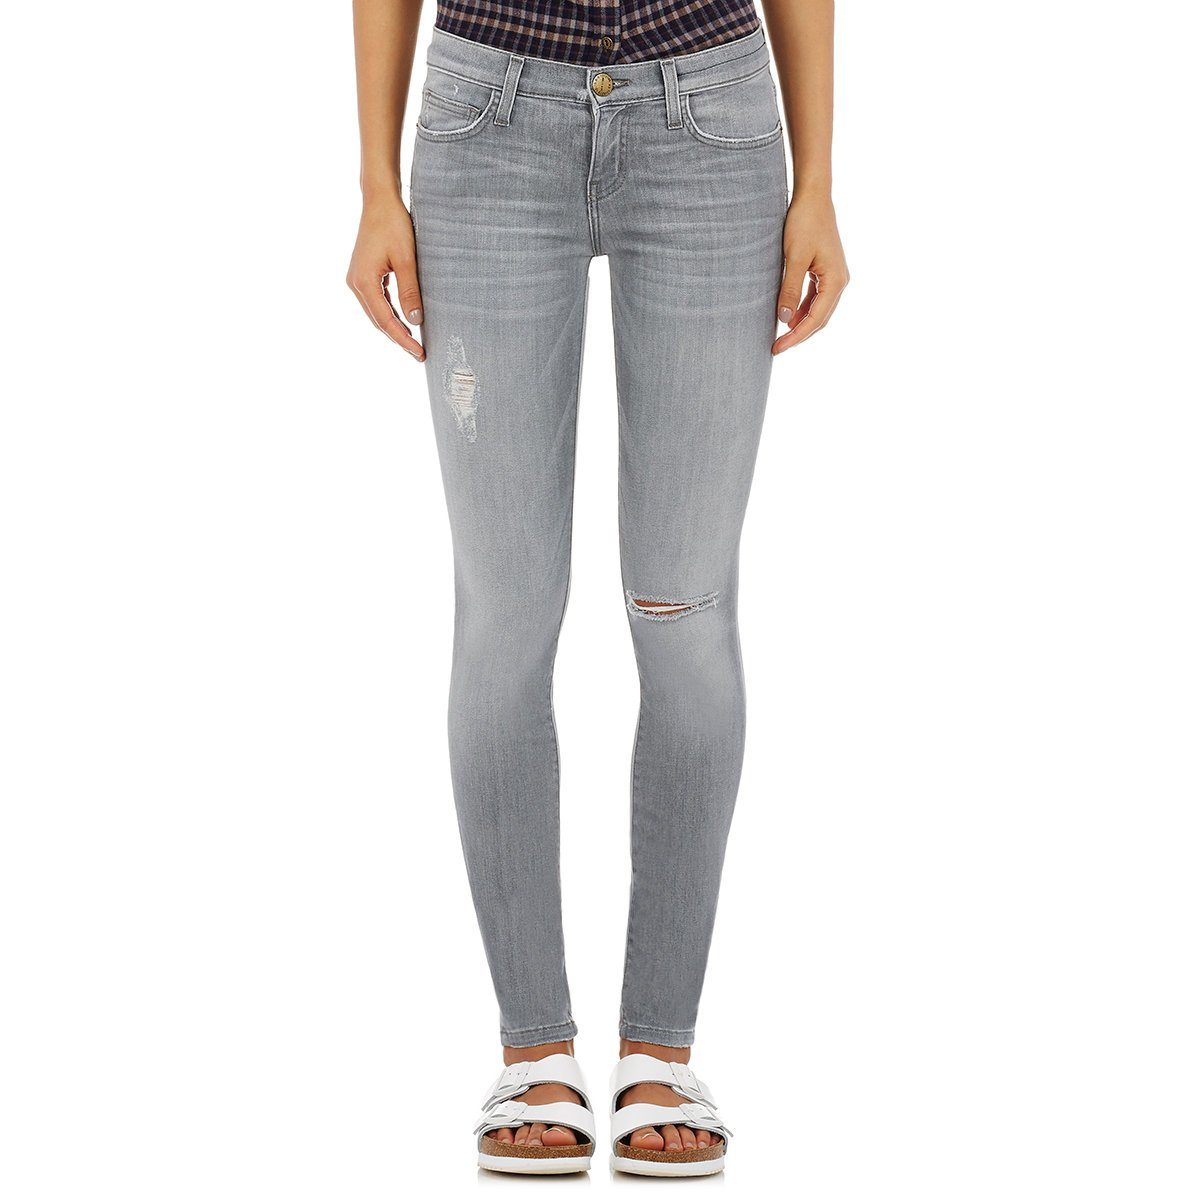 Our women's skinny jeans are made to make you look thinner and your legs look longer. You'll find women's skinny jeans have the classic looks and the trendy styles to flatter your figure. Old Navy skinny jeans for women are a great denim style because of their slim fit.